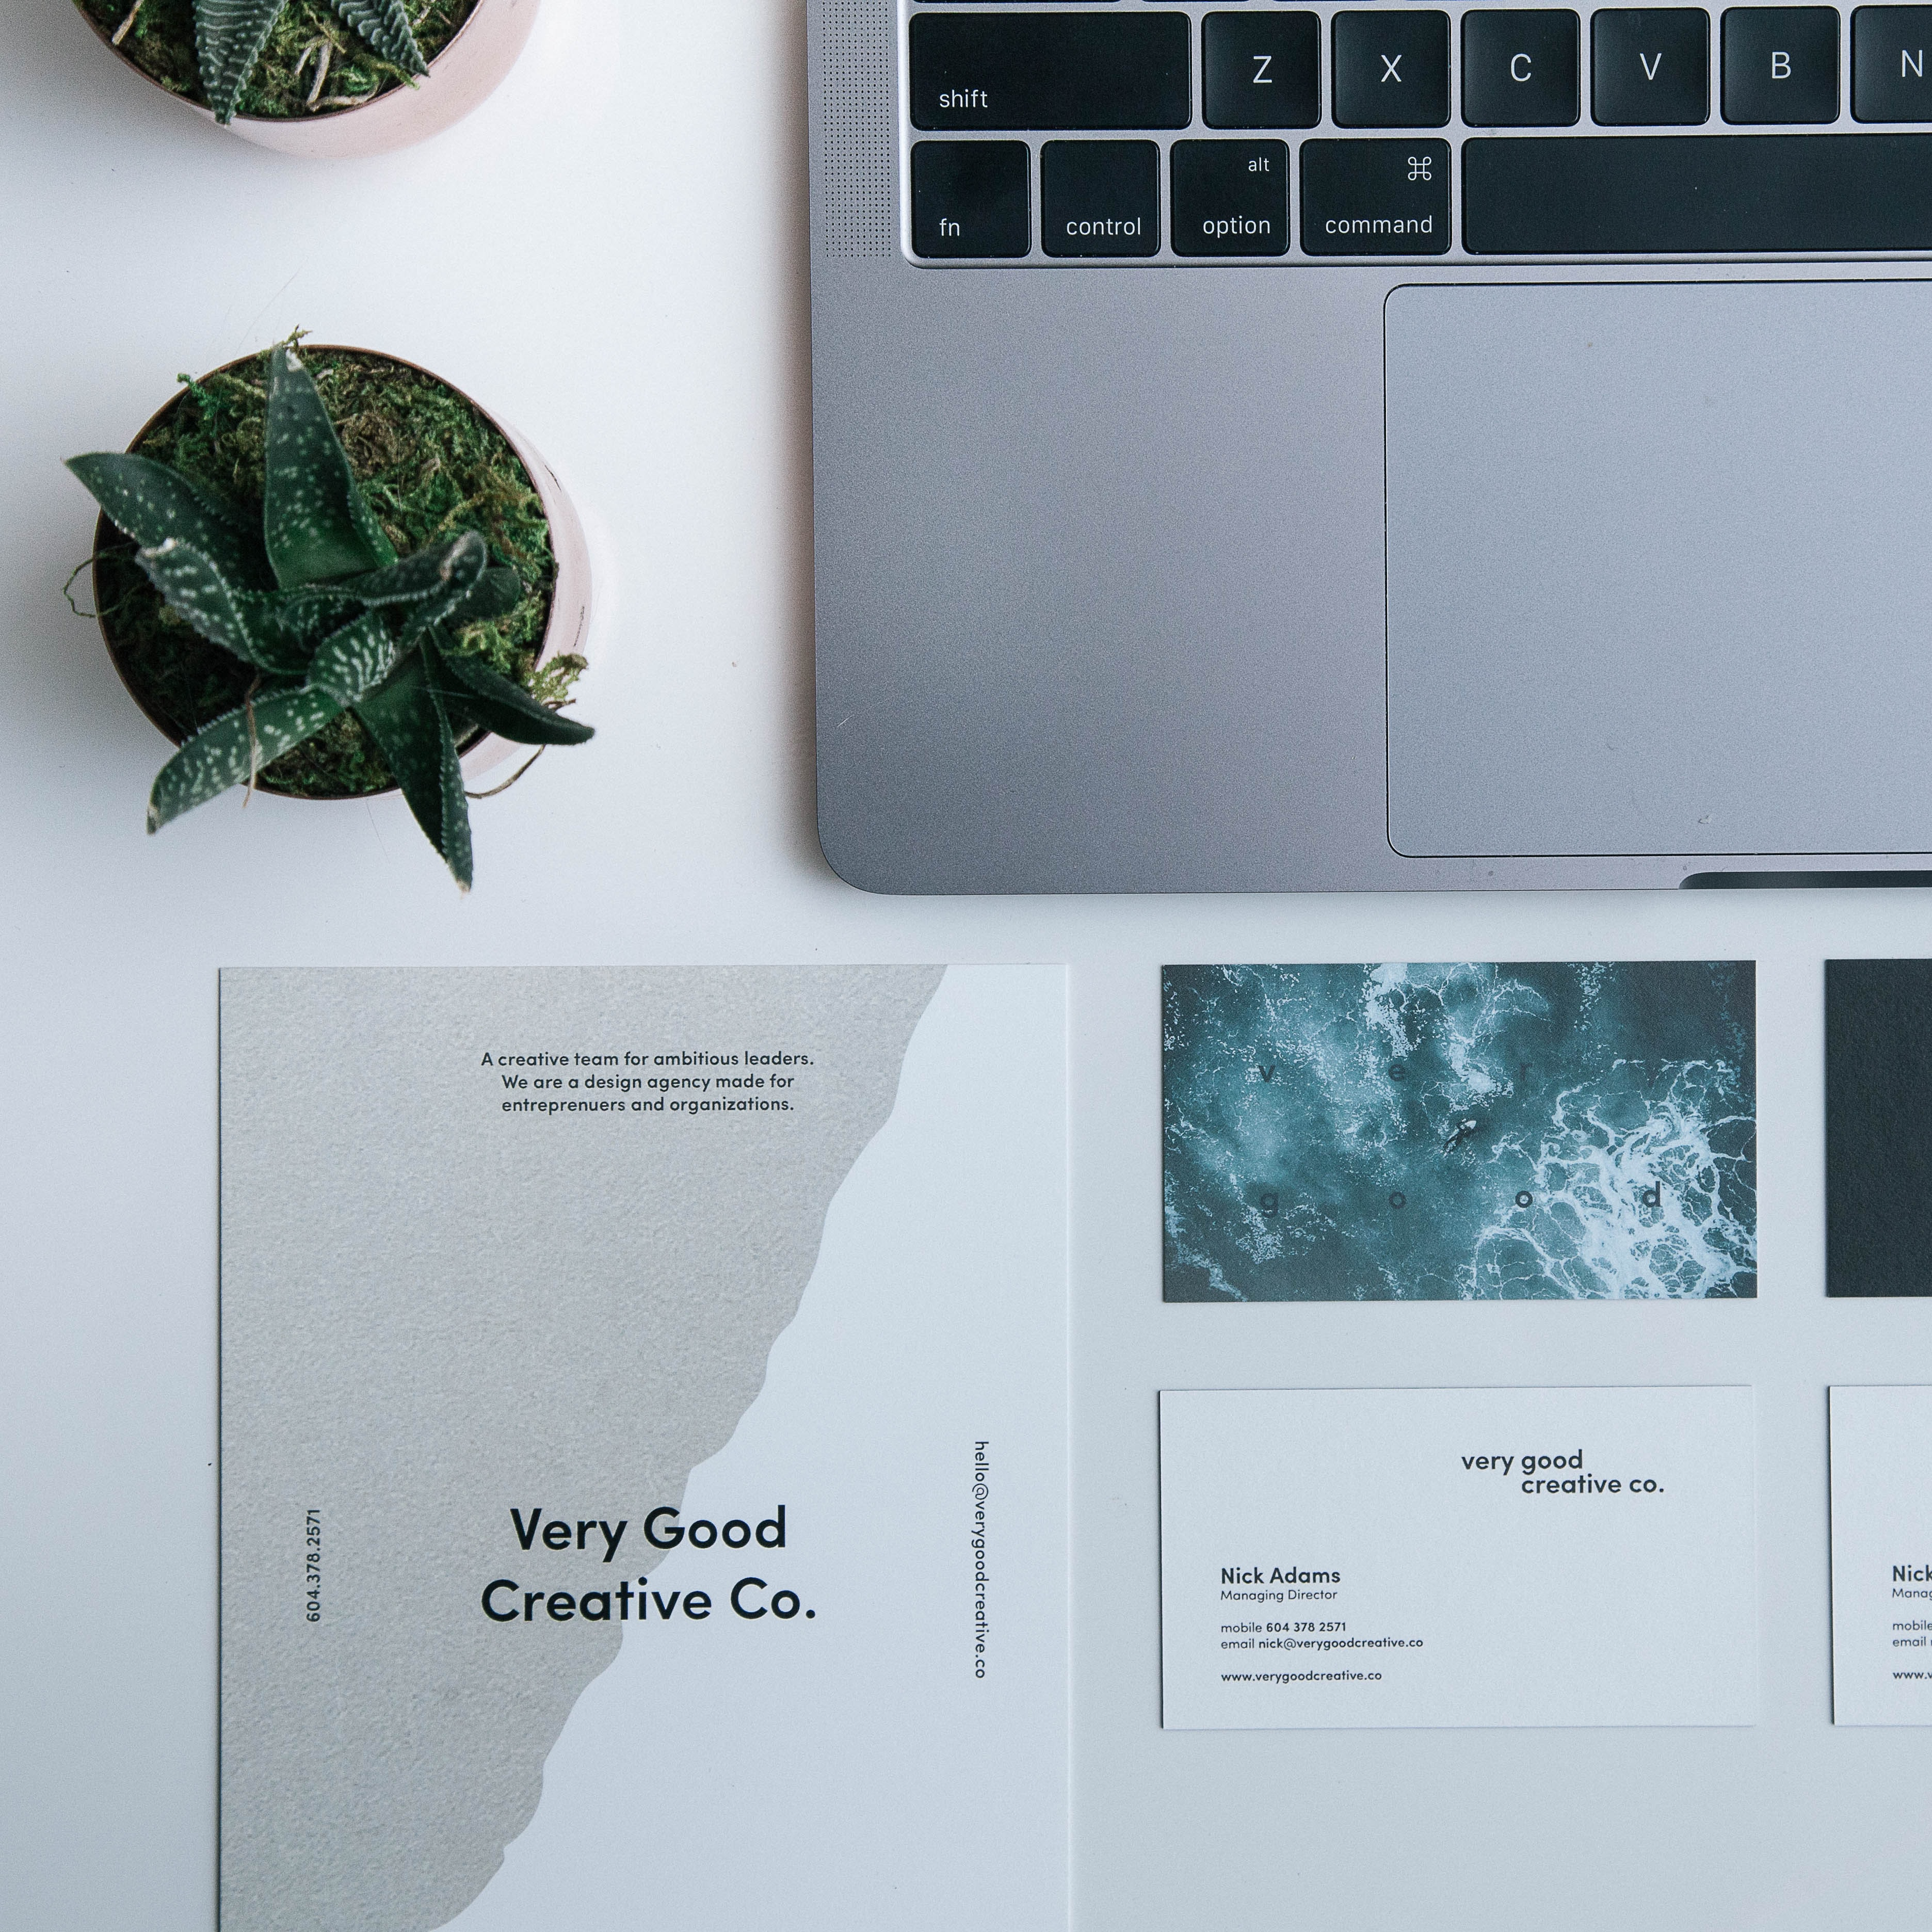 Top 0down shot of a laptop and a branding pack